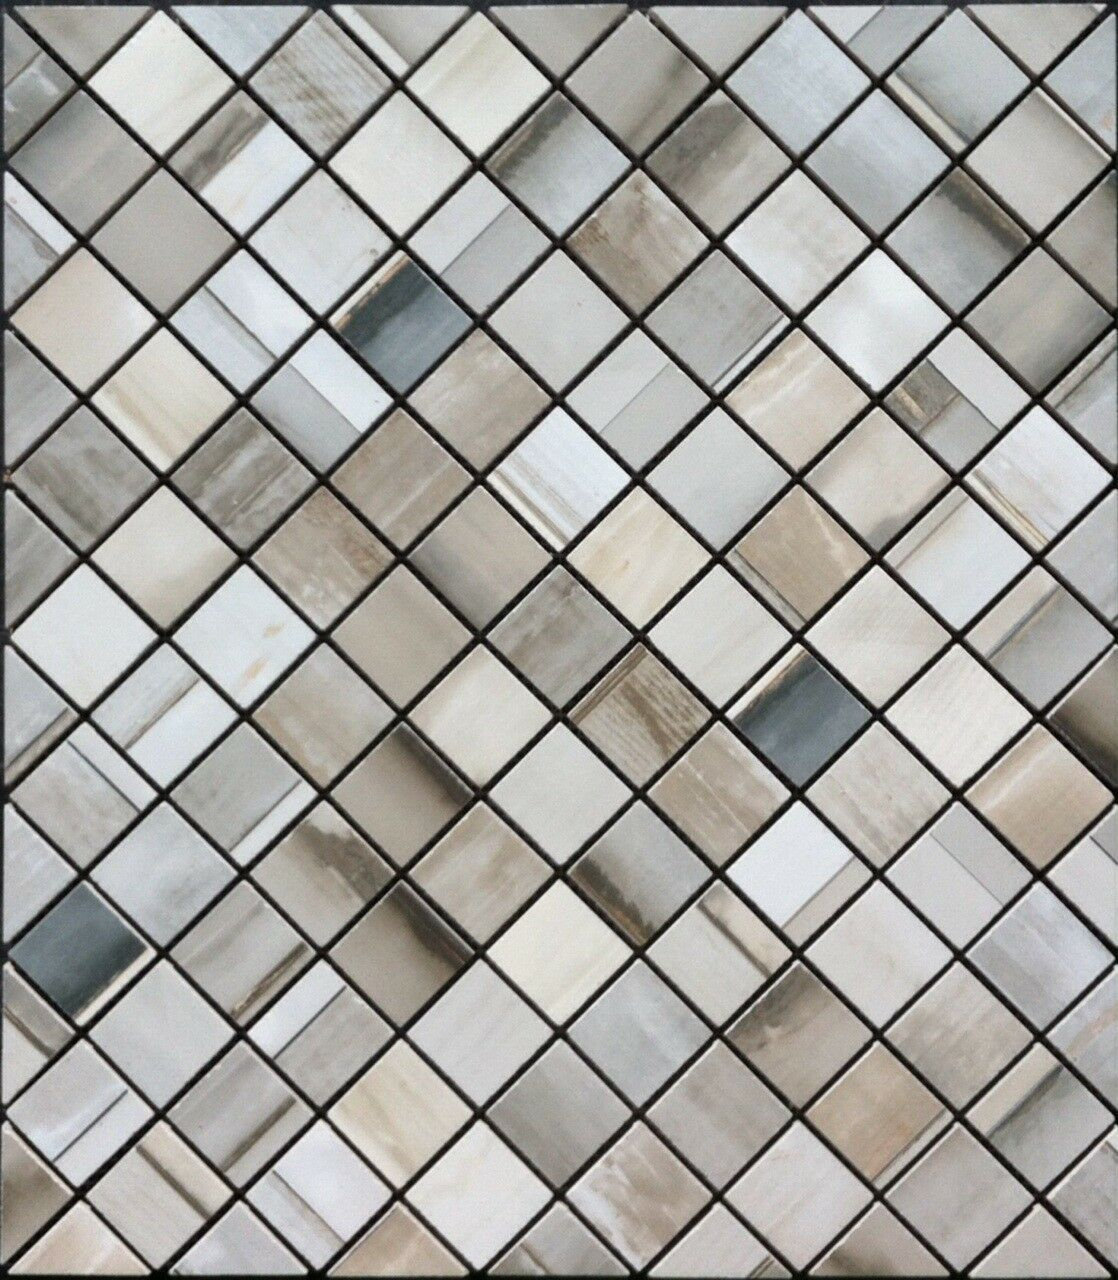 21 7 8  X 19 1 4  Tile Medallion Mosaic Inlay - Can be used in a floor or wall